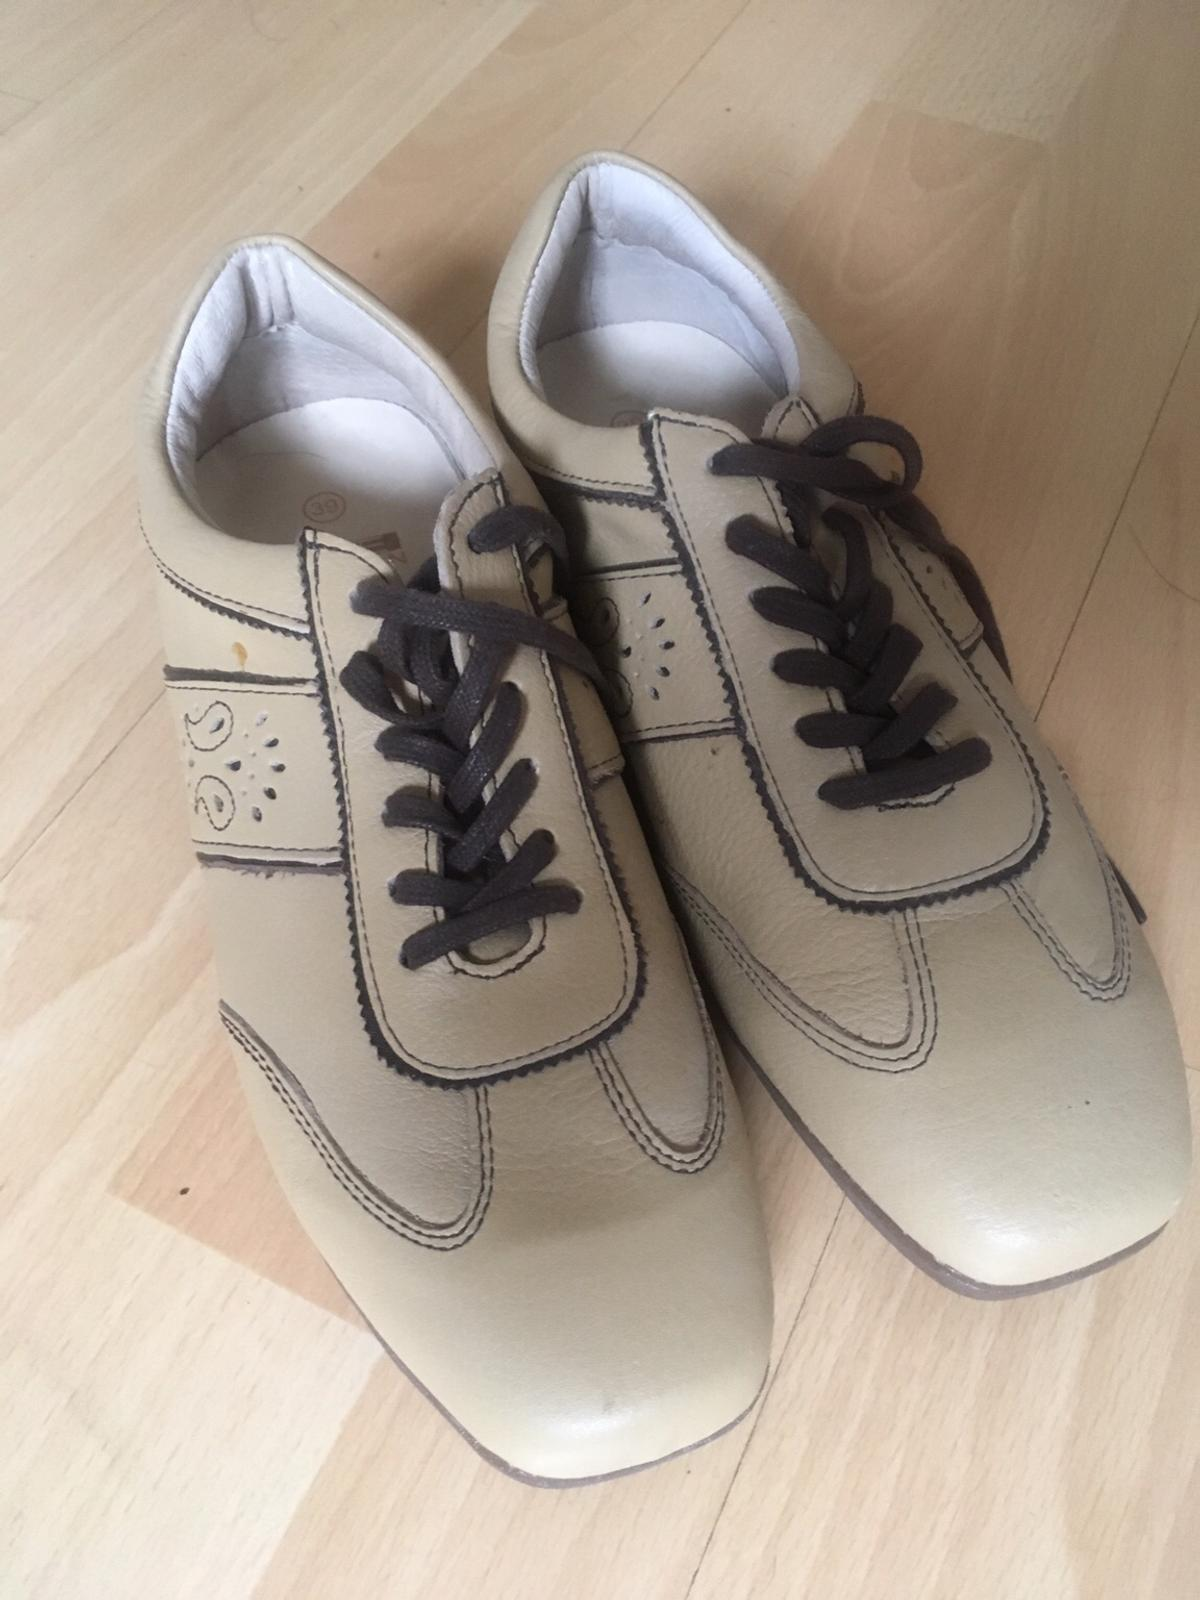 36657a8494dc8e Damenschuhe Gr.39 in 33330 Gütersloh for €5.00 for sale - Shpock